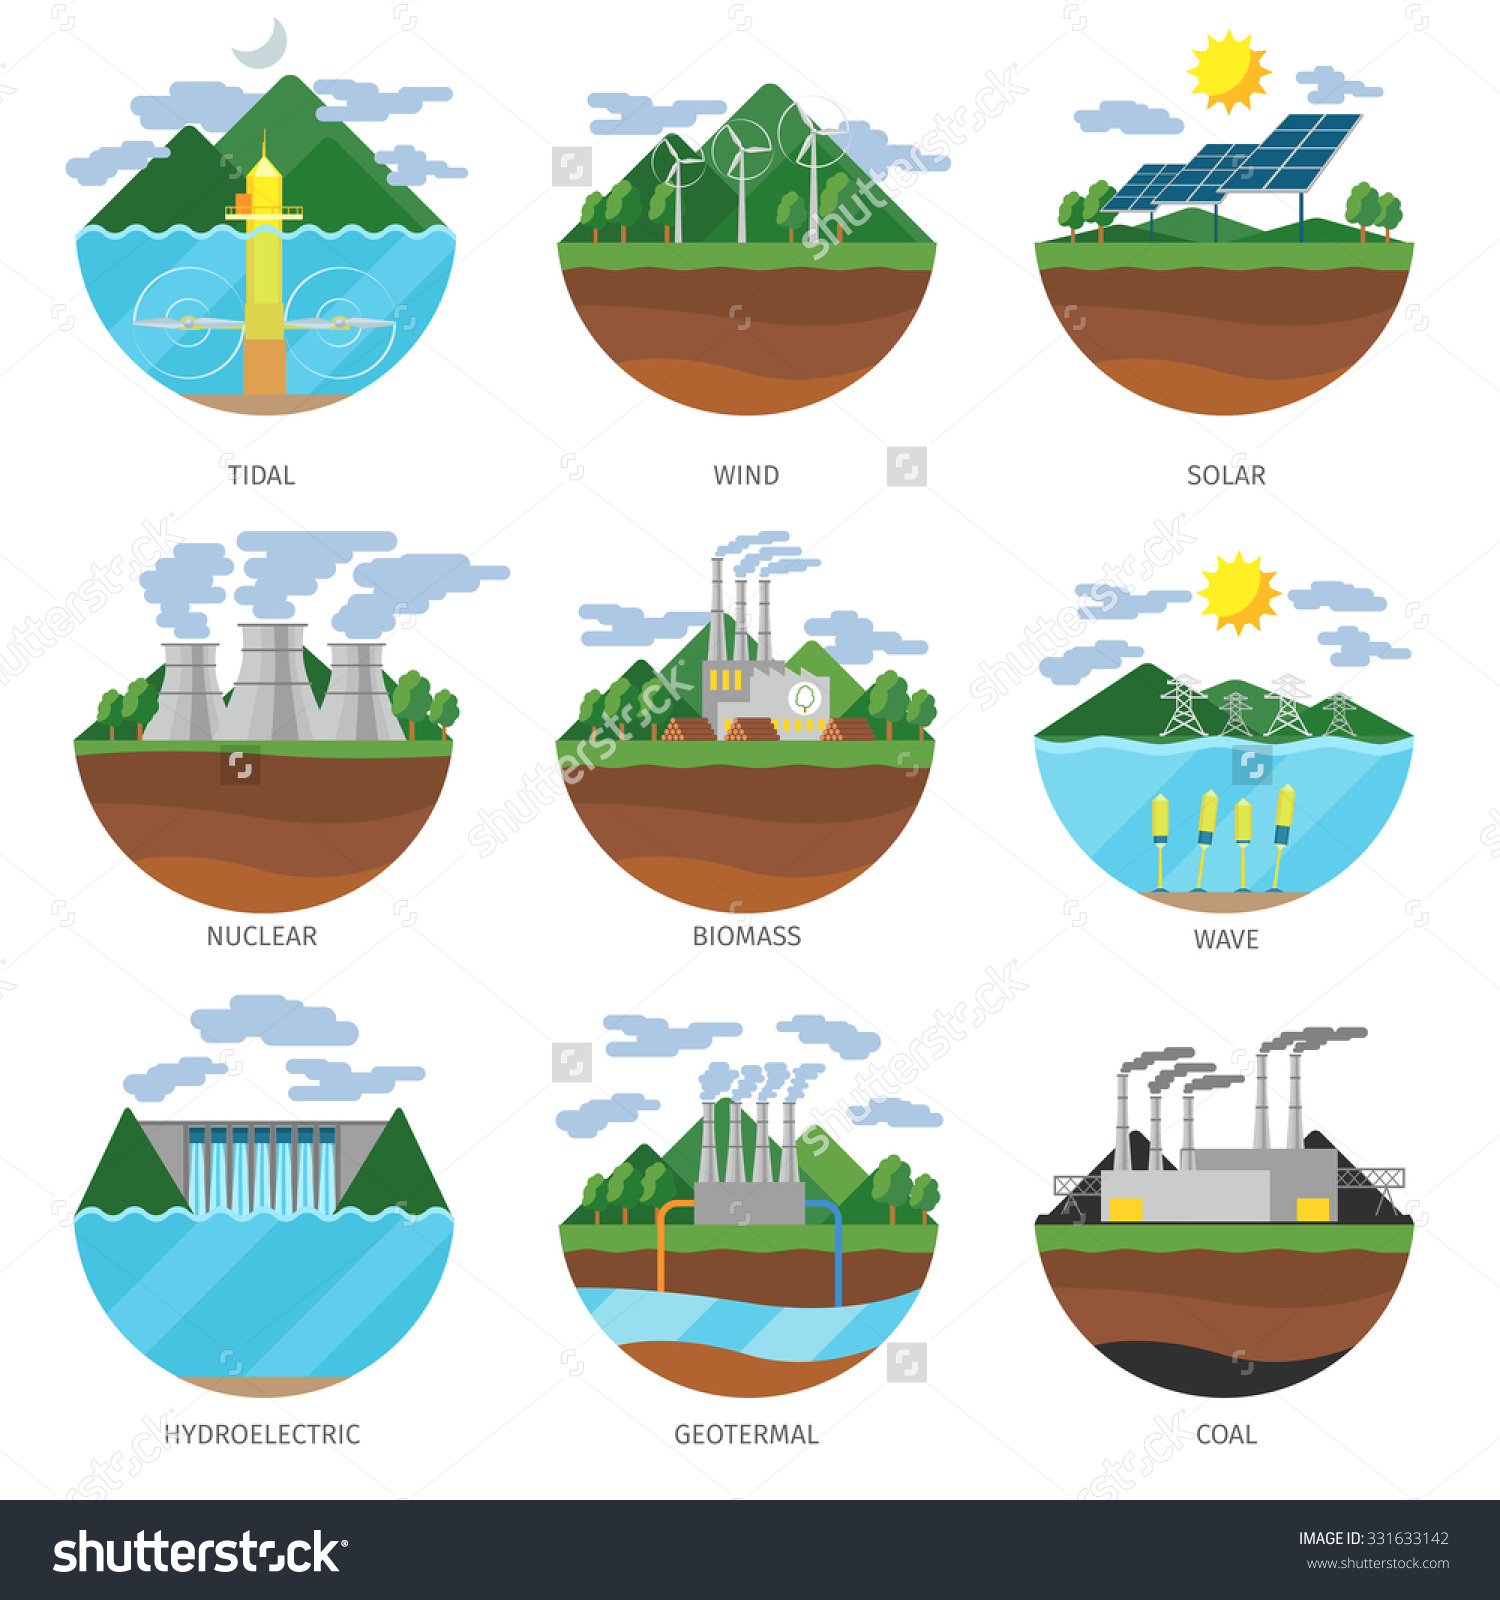 renewable forms of energy wind energy essay A premier membership is required to view the full essay  renewable energy sources are solar power, wind, water,  renewable forms of energy over using natural .